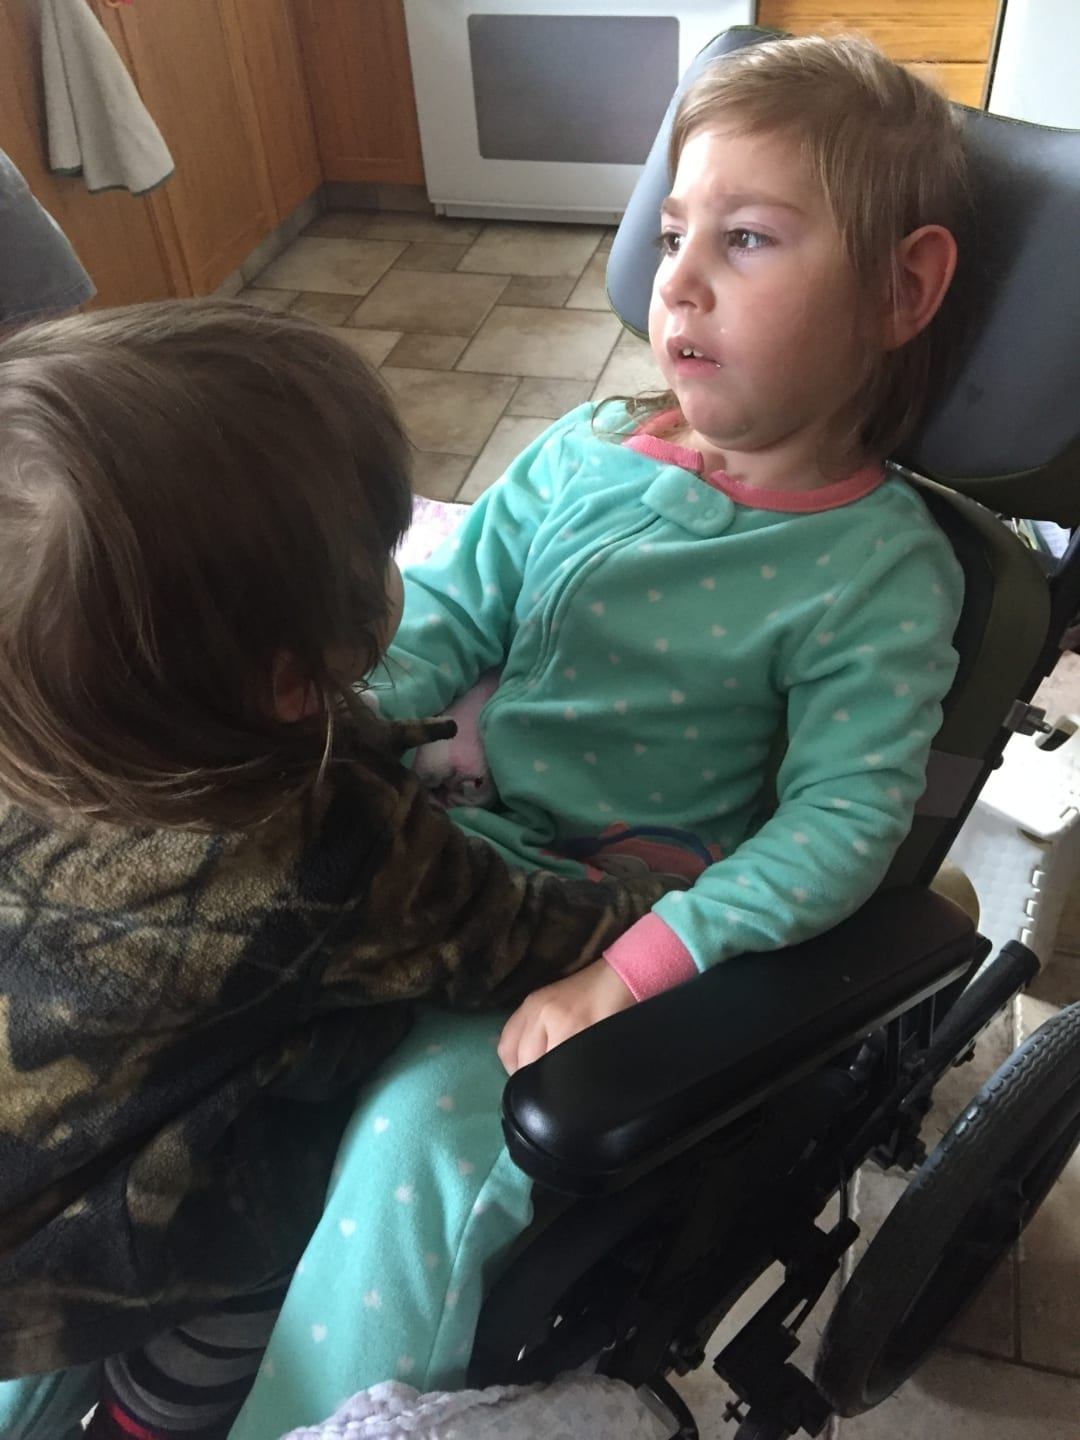 Mikaela MacNaughton had severe strokes at birth which has left her with quadriplegic cerebral palsy, blindness, seizures and multiple other ailments. Her stiff legs have caused her hip to dislocate which means she will need specialized surgery in Texas. Courtesy of Ruth MacNaughton